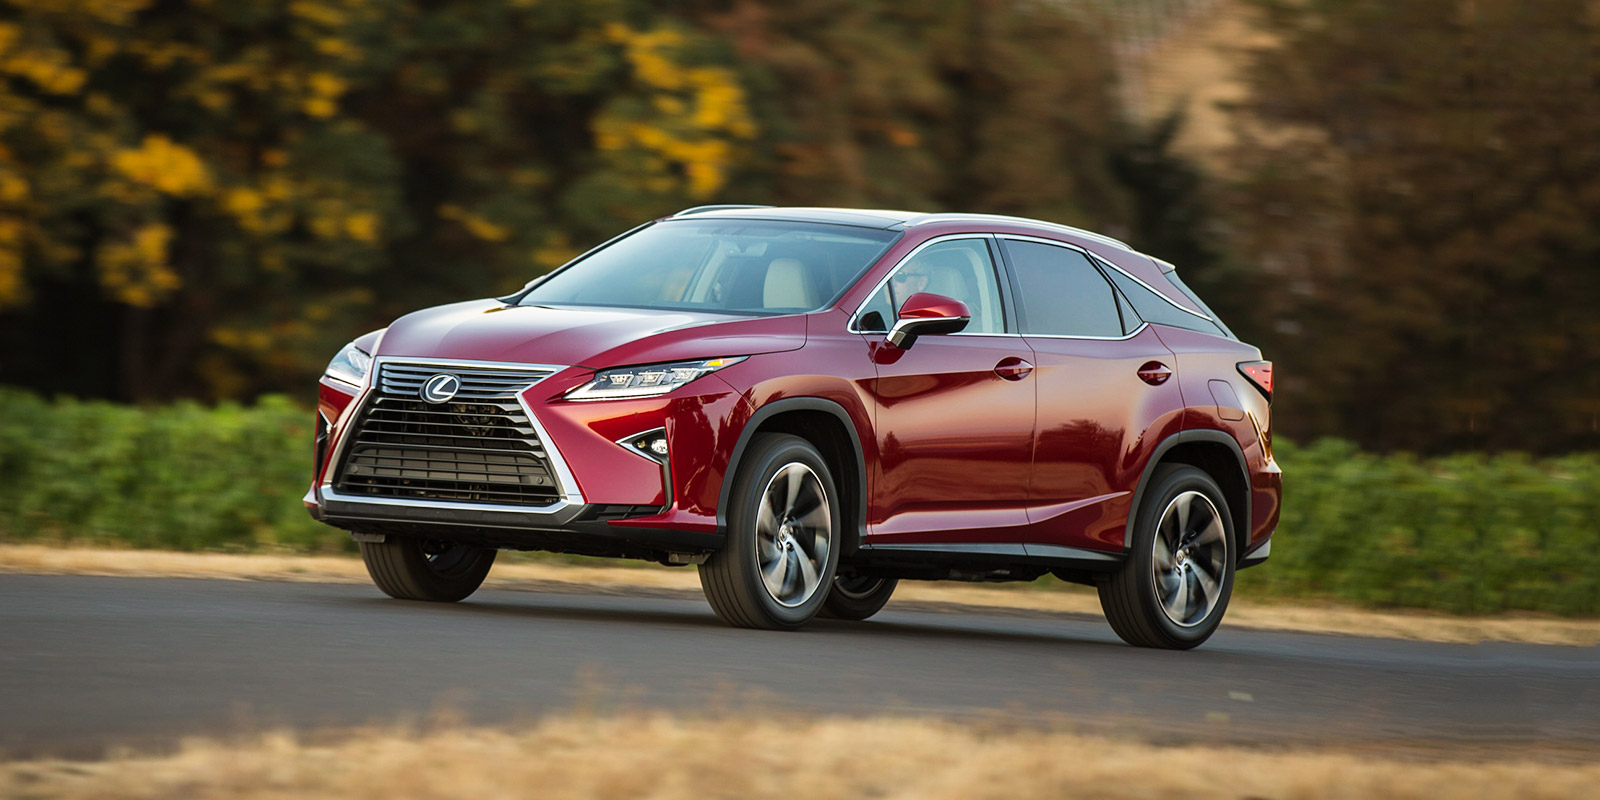 New 2016 Lexus RX prices and specs revealed | carwow